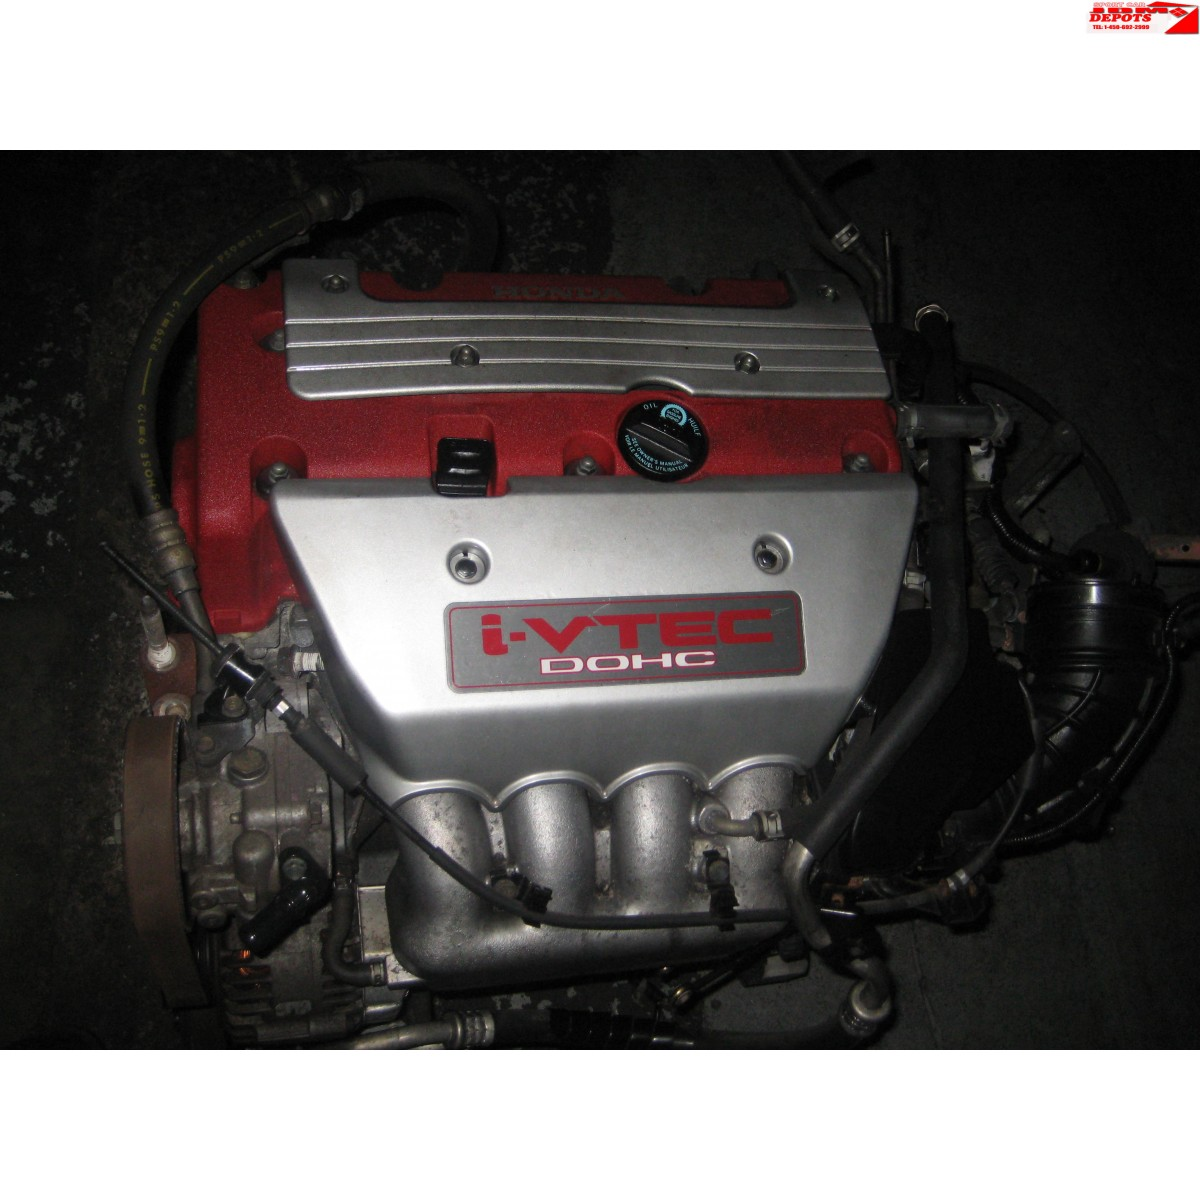 Your No 1 Source For All Jdm Engines Jdm Transmissions Jdm Parts Tel 1 450 692 2999 Jdm Engines Jdm Motors Jdm Moteur Jdm Acura Rsx Dc5 Swap Jdm Rsx Dc5 K20a Engine Jdm Rsx Dc5